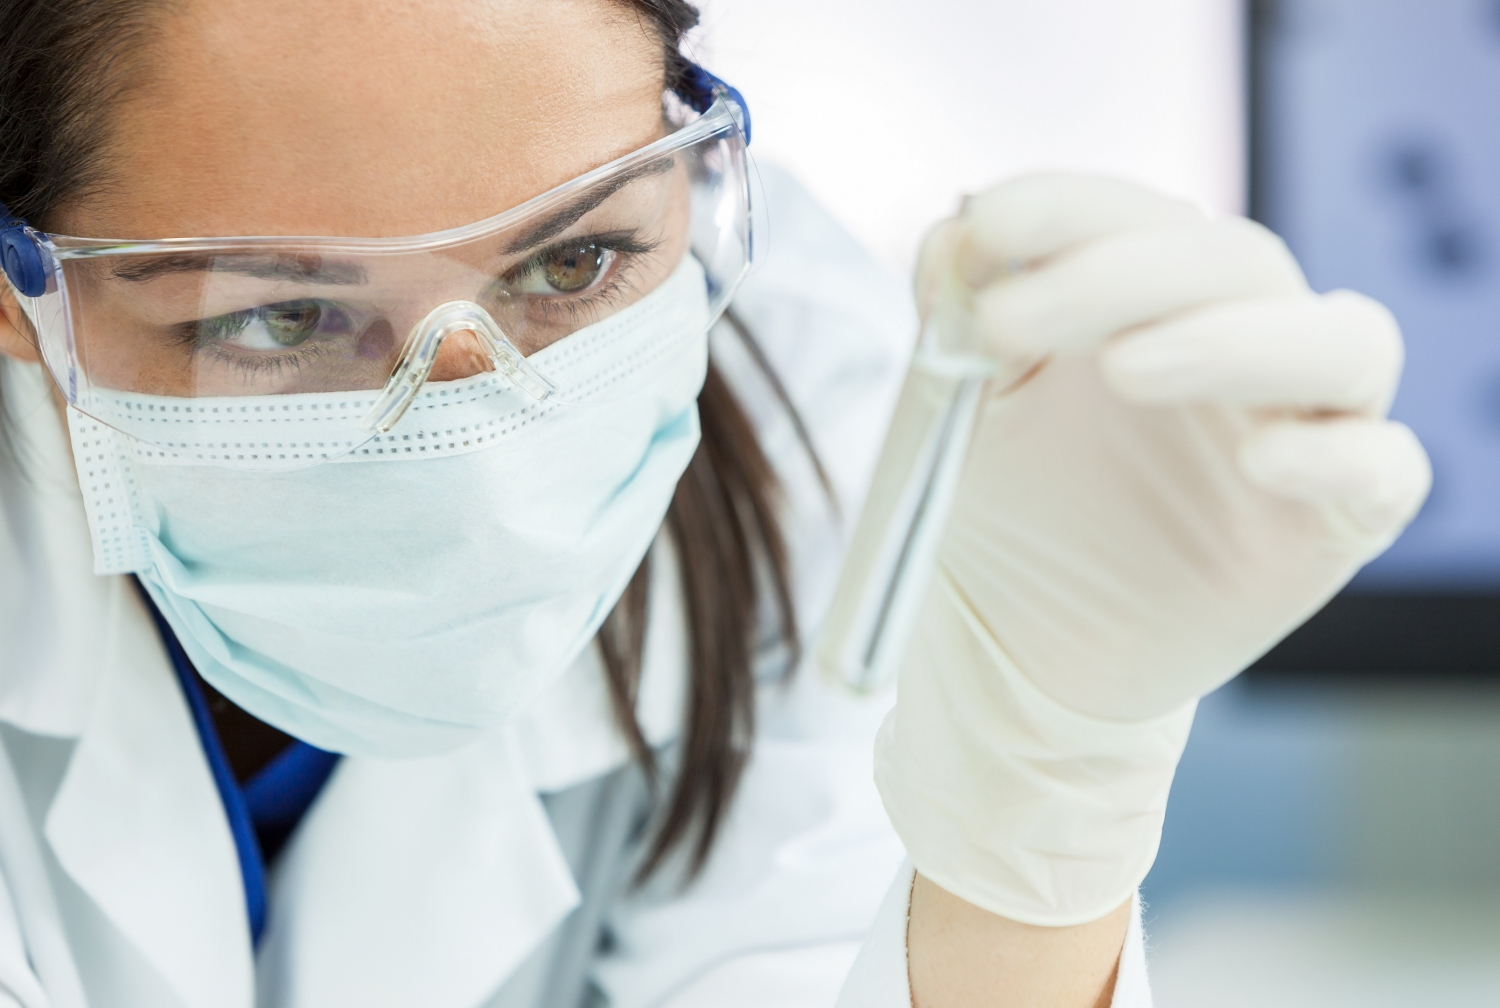 a woman wearing a protective face mask holding a test tube in a lab